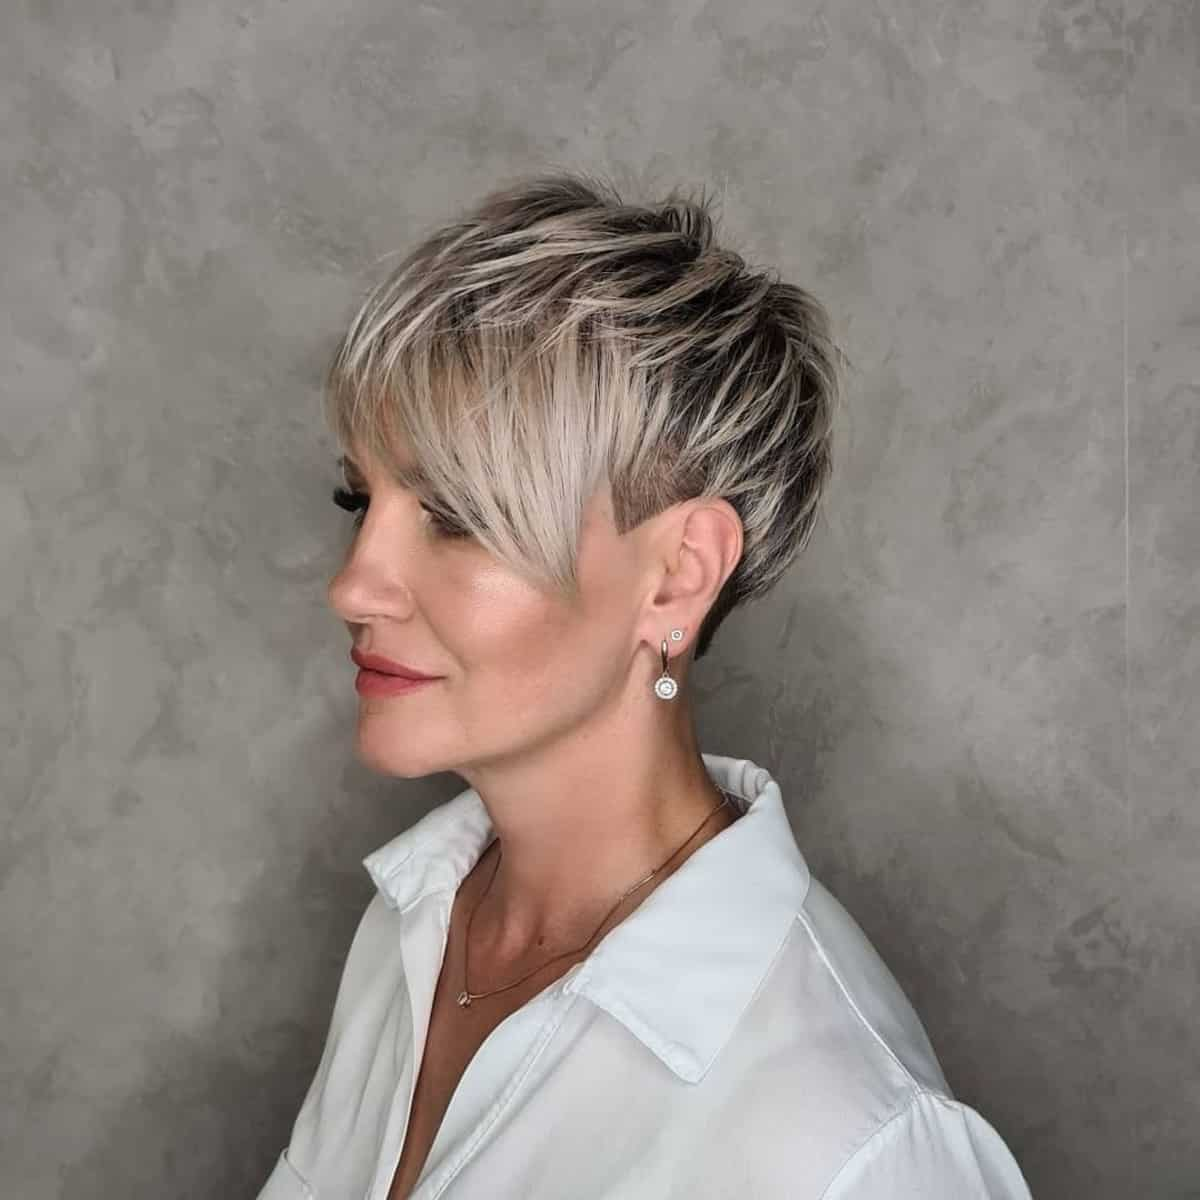 25 Textured Pixie Cut Ideas for a Messy, Modern Look